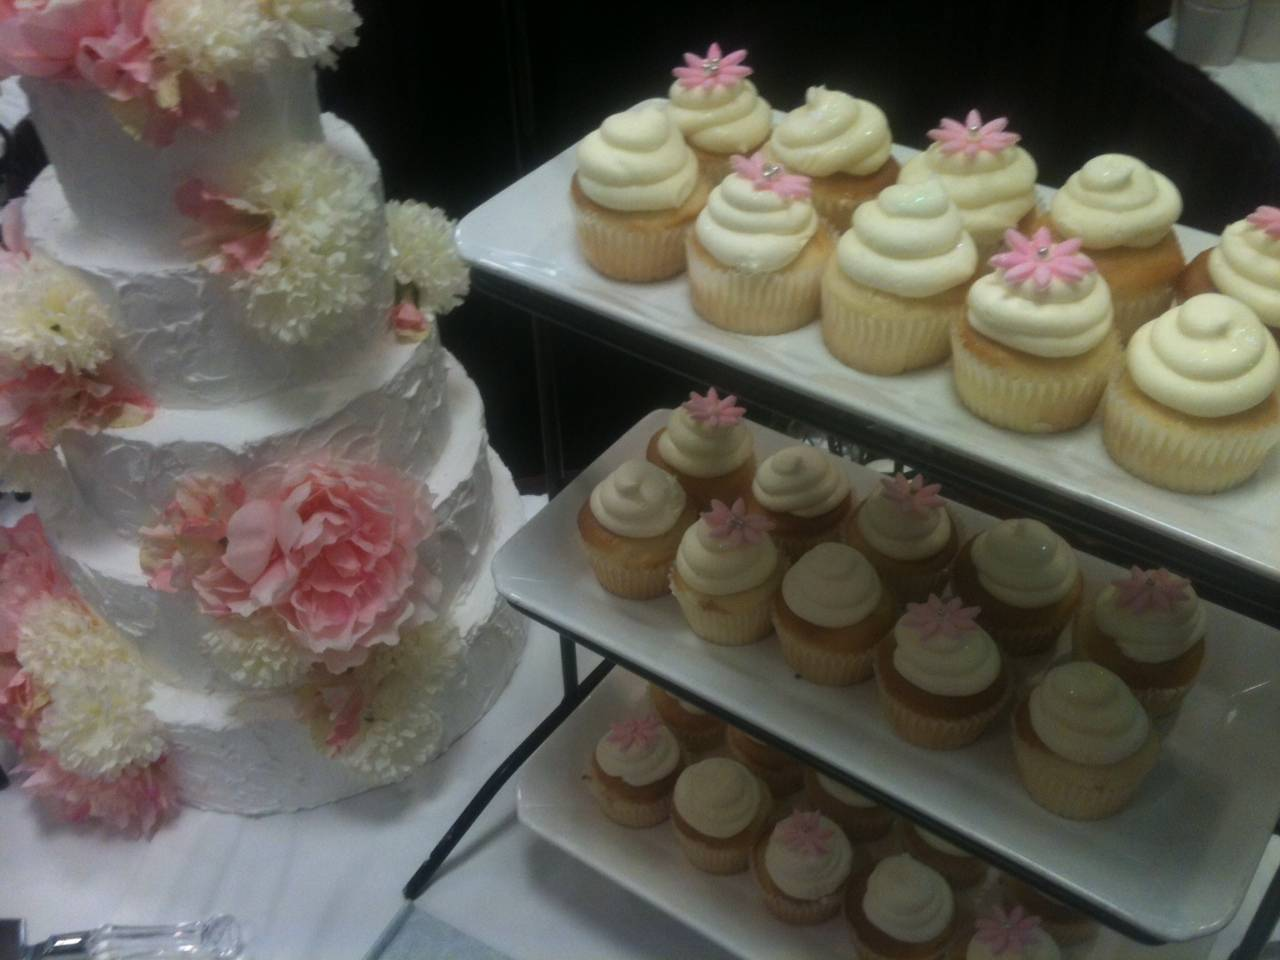 Wedding cake/cupcake display for The Doubletree Bridal Show